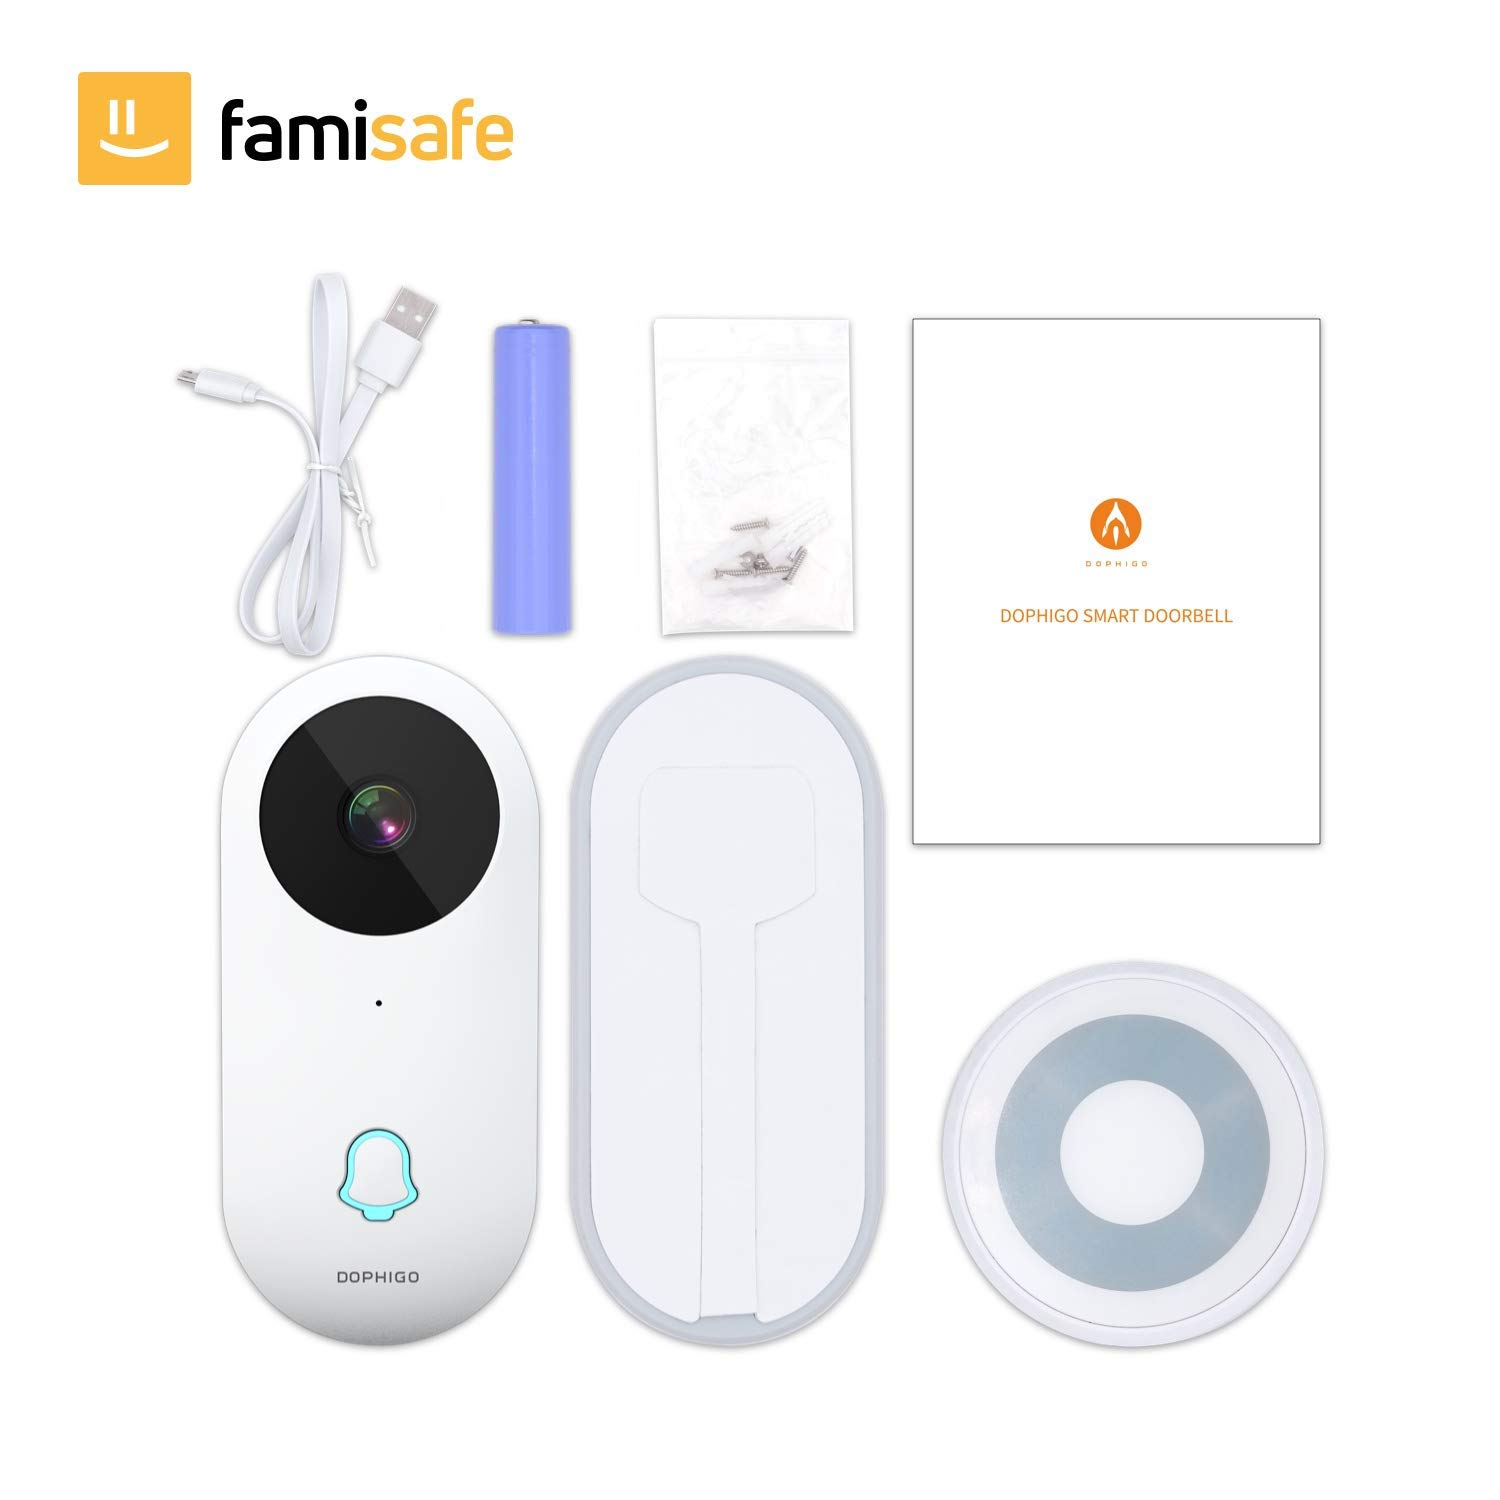 Smart Video Doorbell, Famisafe 960P HD WiFi Security Camera Doorbell with Chime, Real-time HD Video Doorbell, 2-Way Audio, Free Cloud Service, Night Vision and Works with Alexa, APP for iOS Android by Famisafe (Image #7)